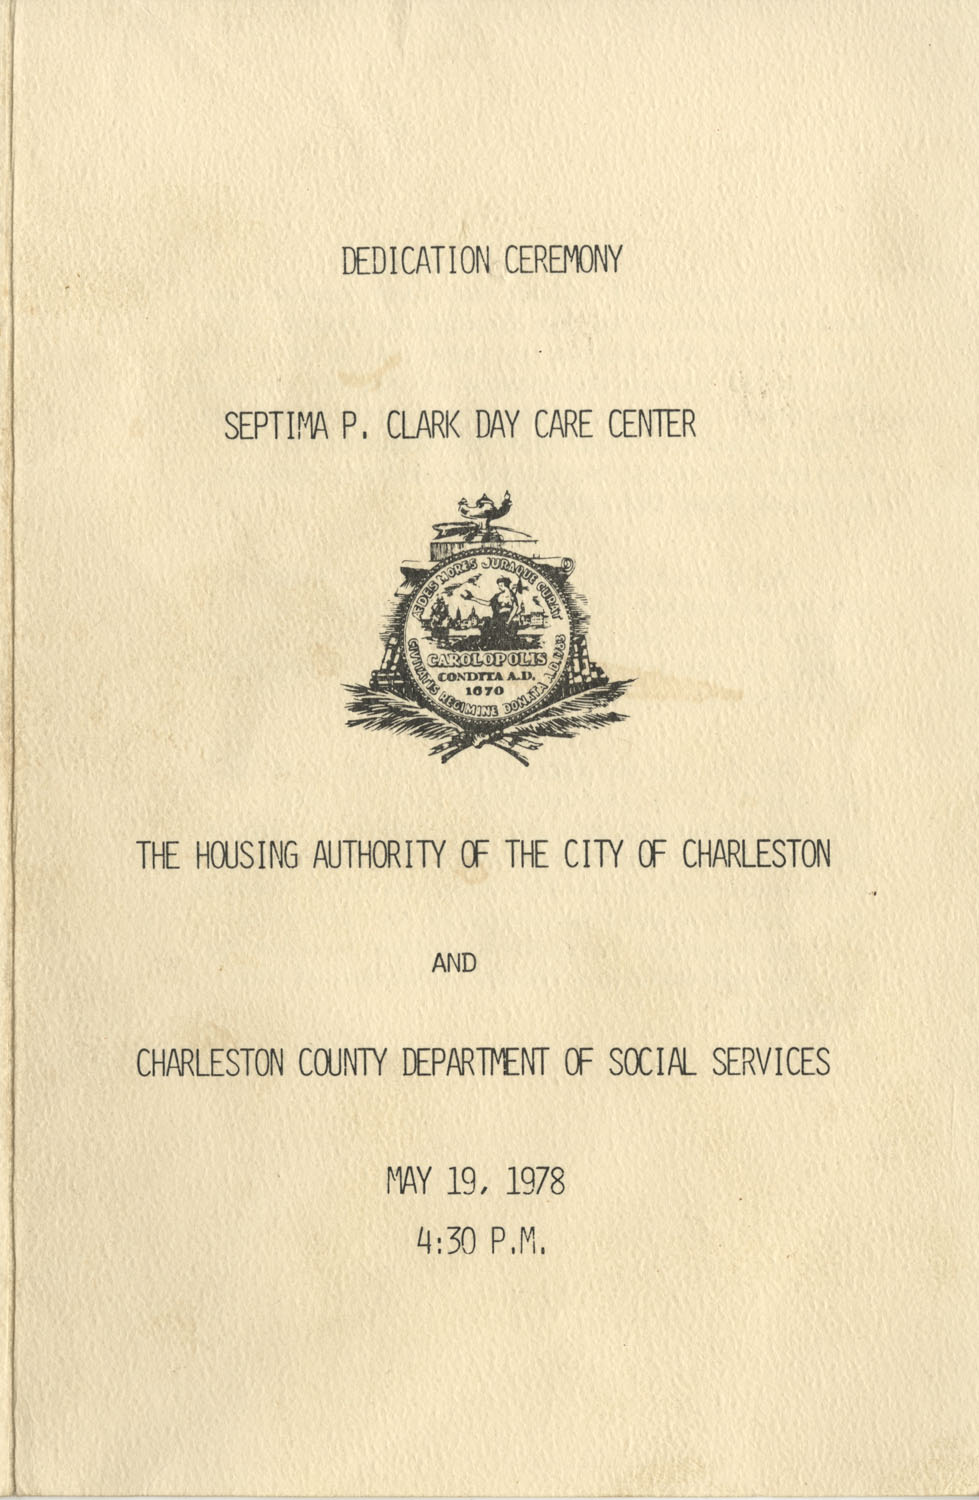 Dedication Ceremony Program, Septima P. Clark Day Care Center, May 19, 1978